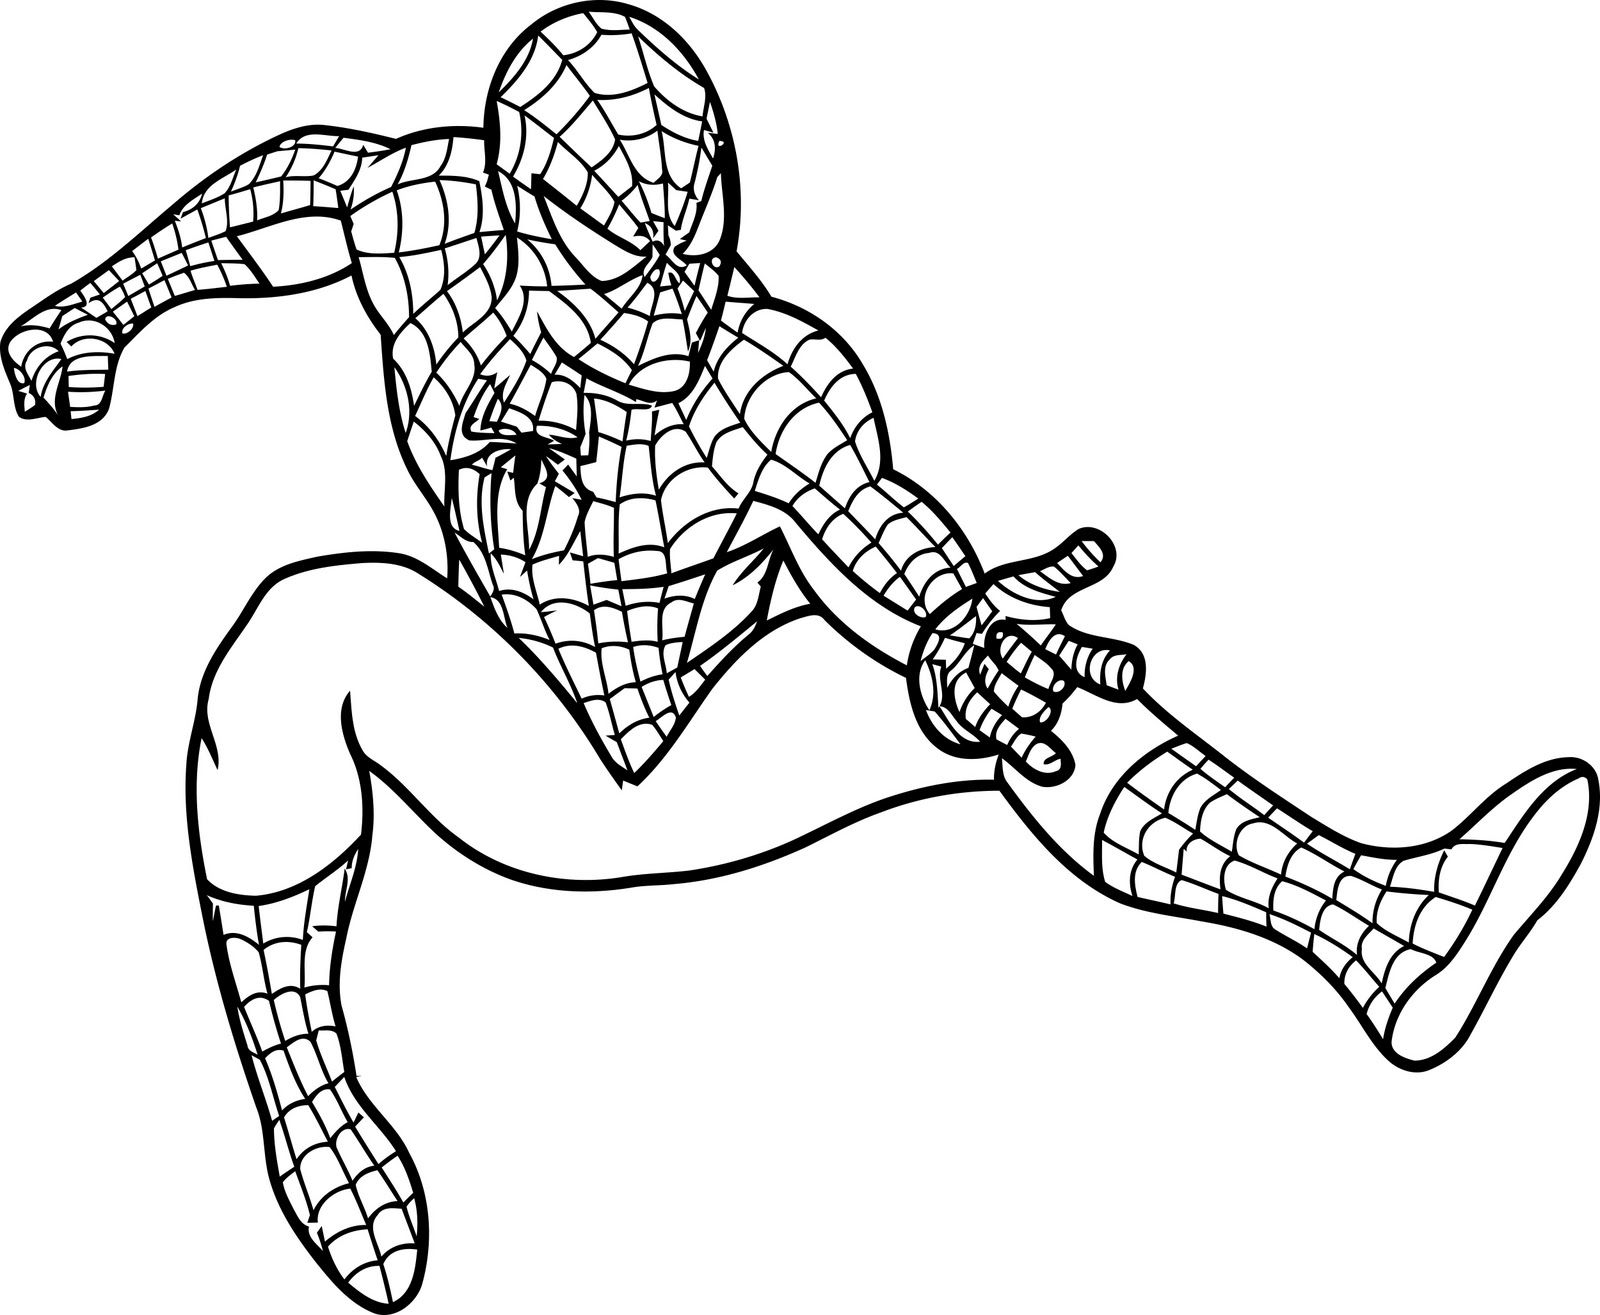 Spiderman 3 coloring pages - Spiderman Coloring Pages Free Spiderman Coloring Pages For Kids Printable